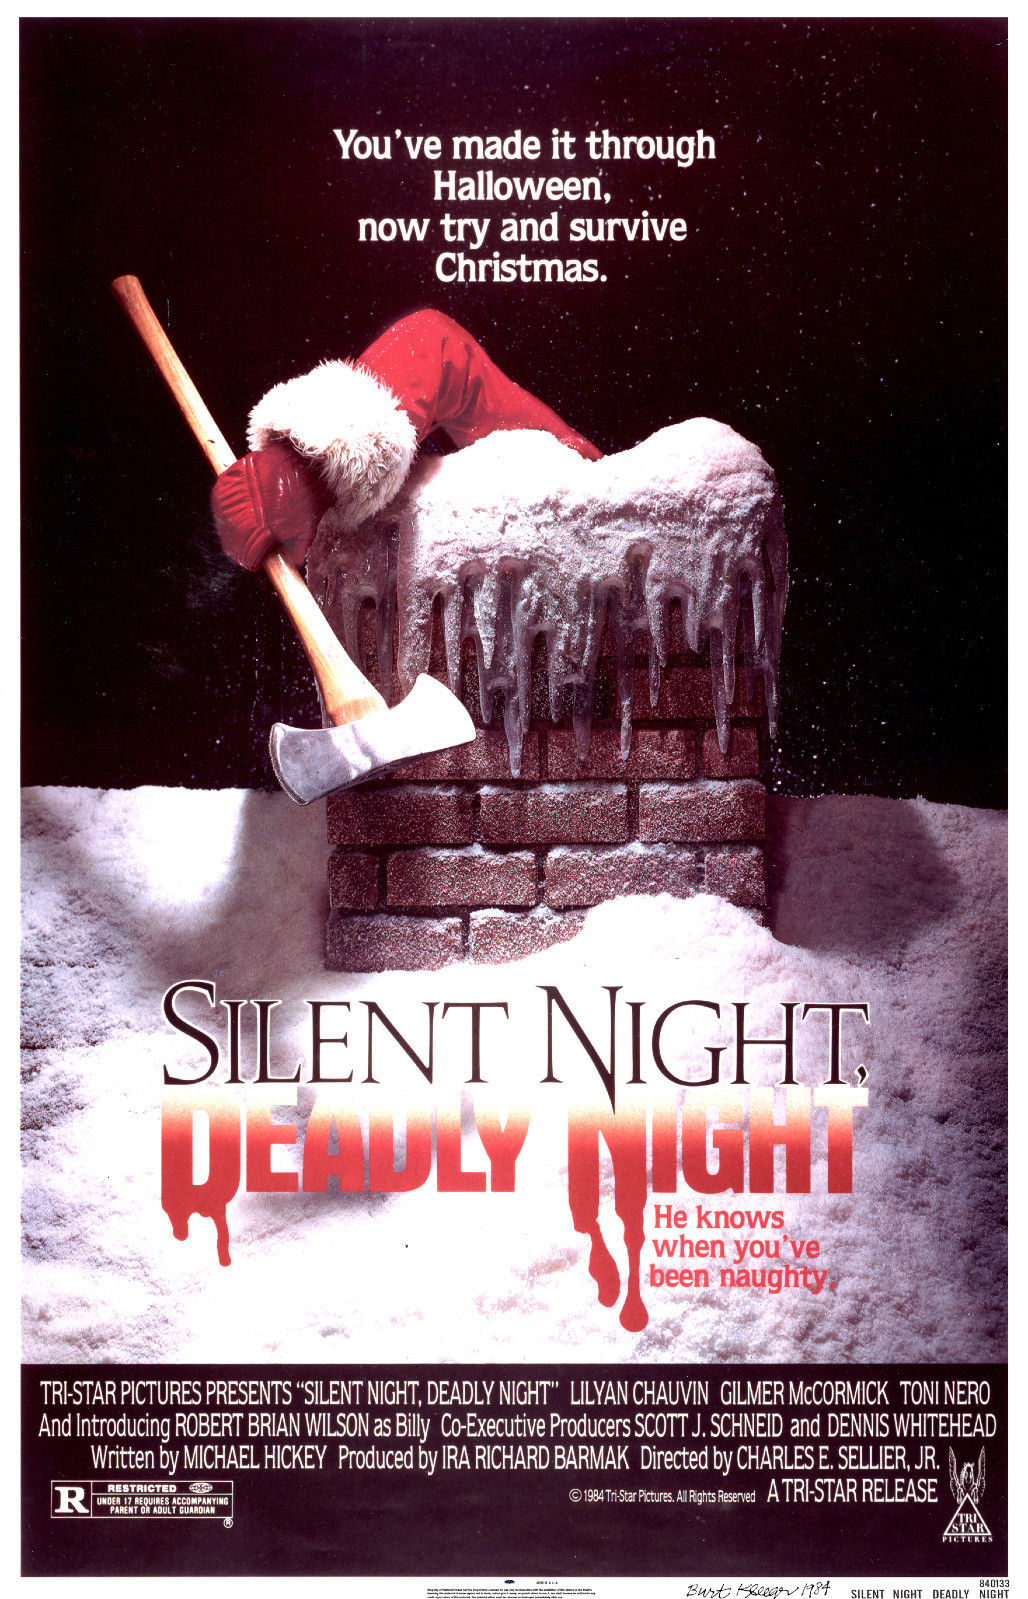 Tri-Star Pictures: Silent Night, Deadly Night (1984)